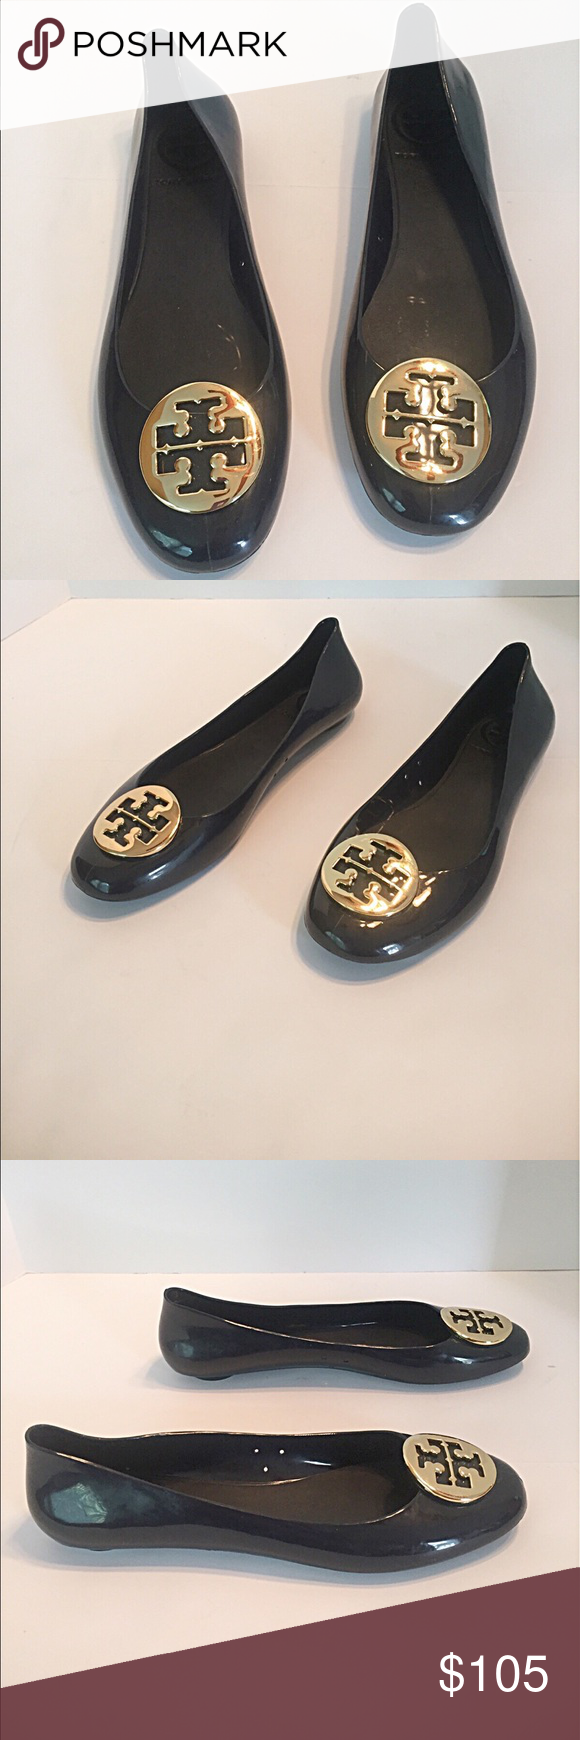 Tory Burch Navy Rubber Jelly Flats Navy blue with gold Tory Burch emblem.  In almost new condition. Great for rainy weather! I wear a size 9 and these  fit a ...